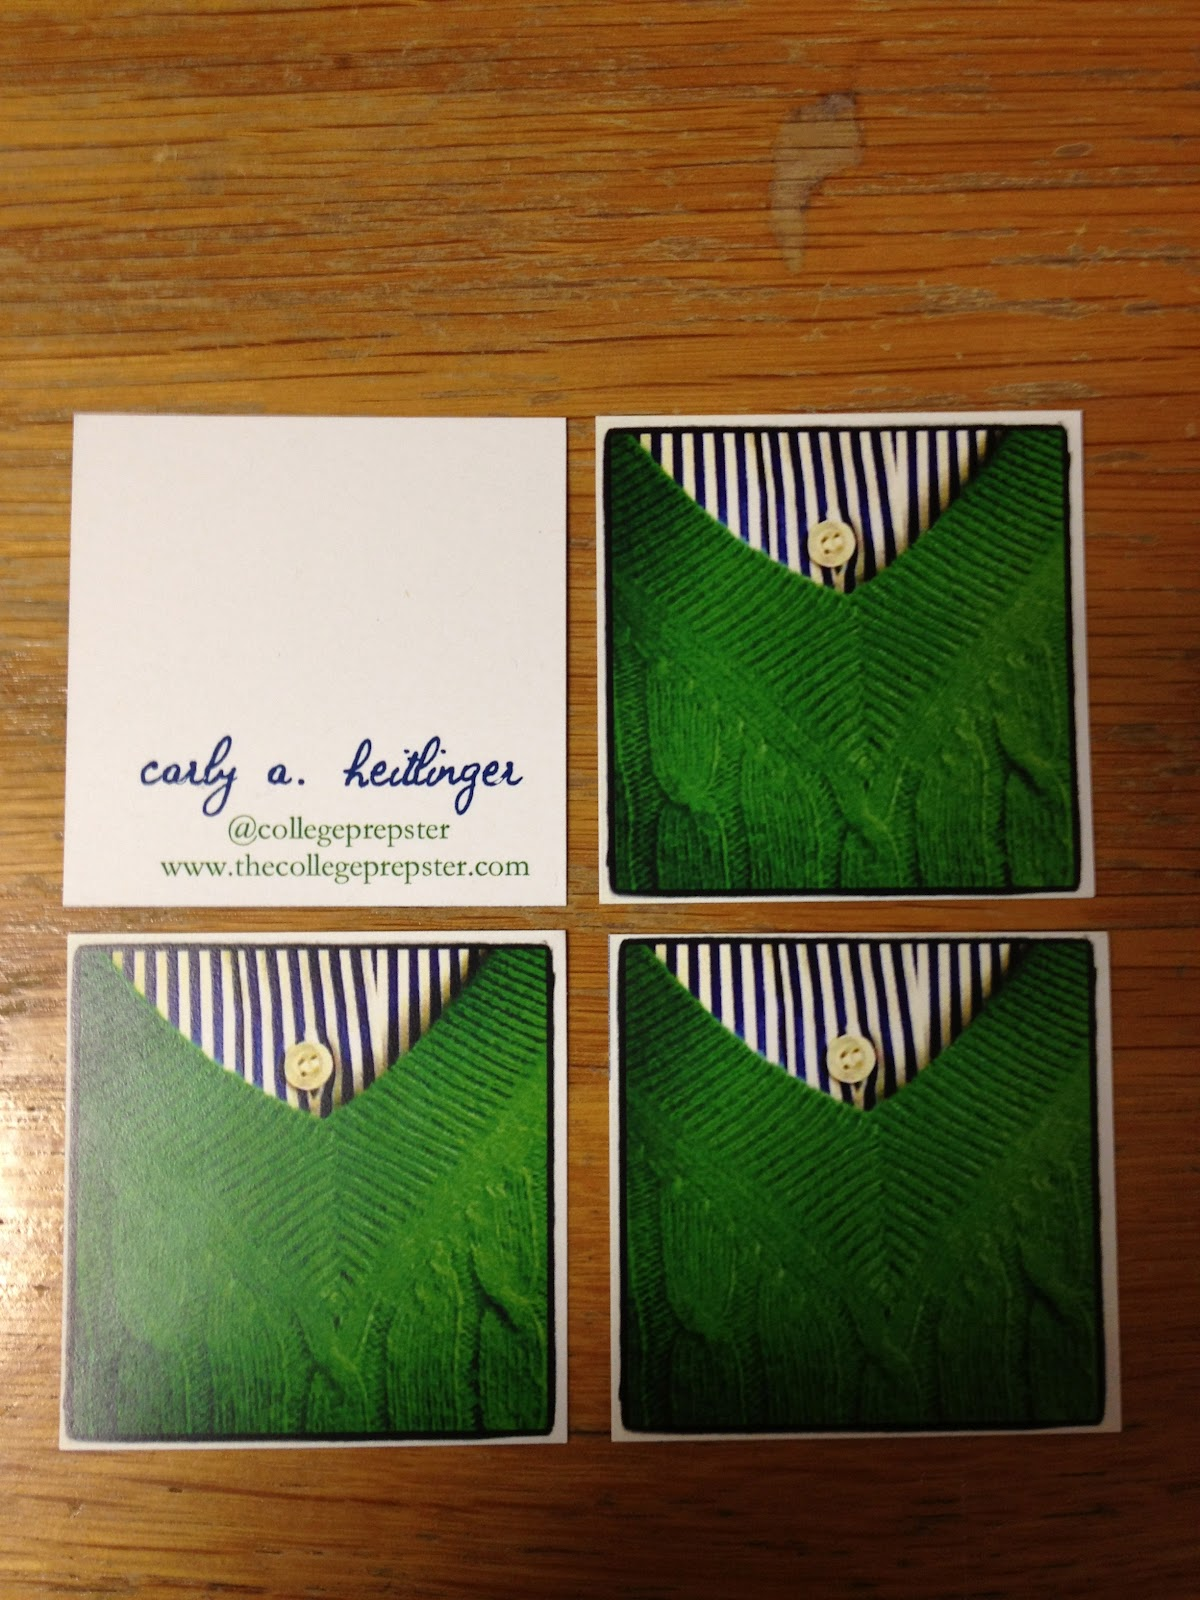 Instagram Business Cards The College Prepster